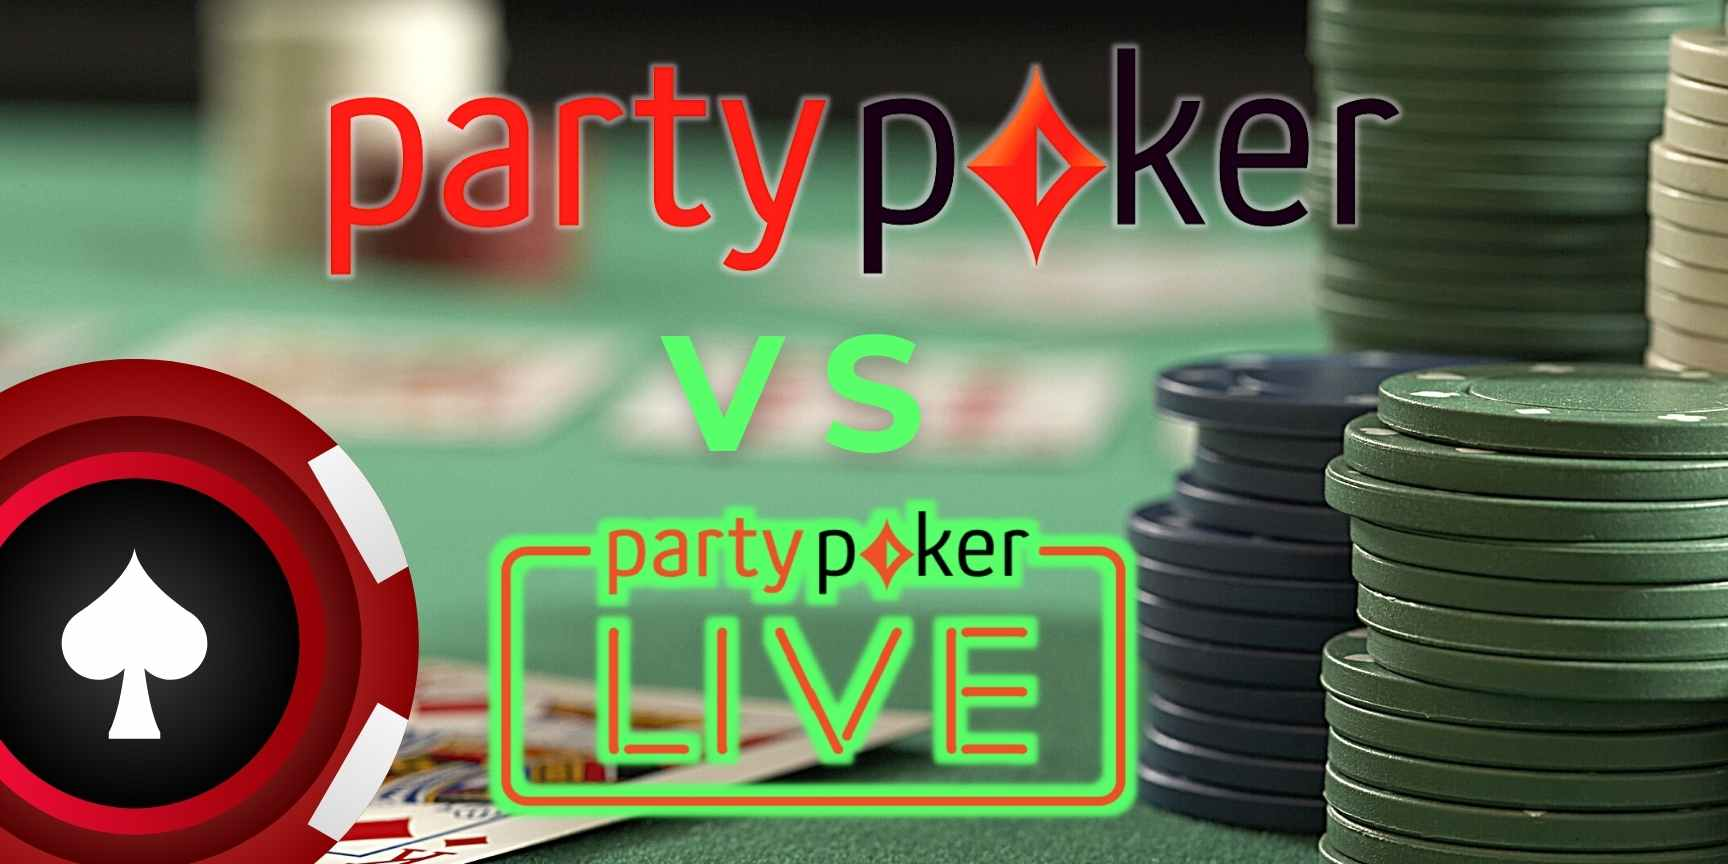 Difference between Partypoker and Partypoker Live